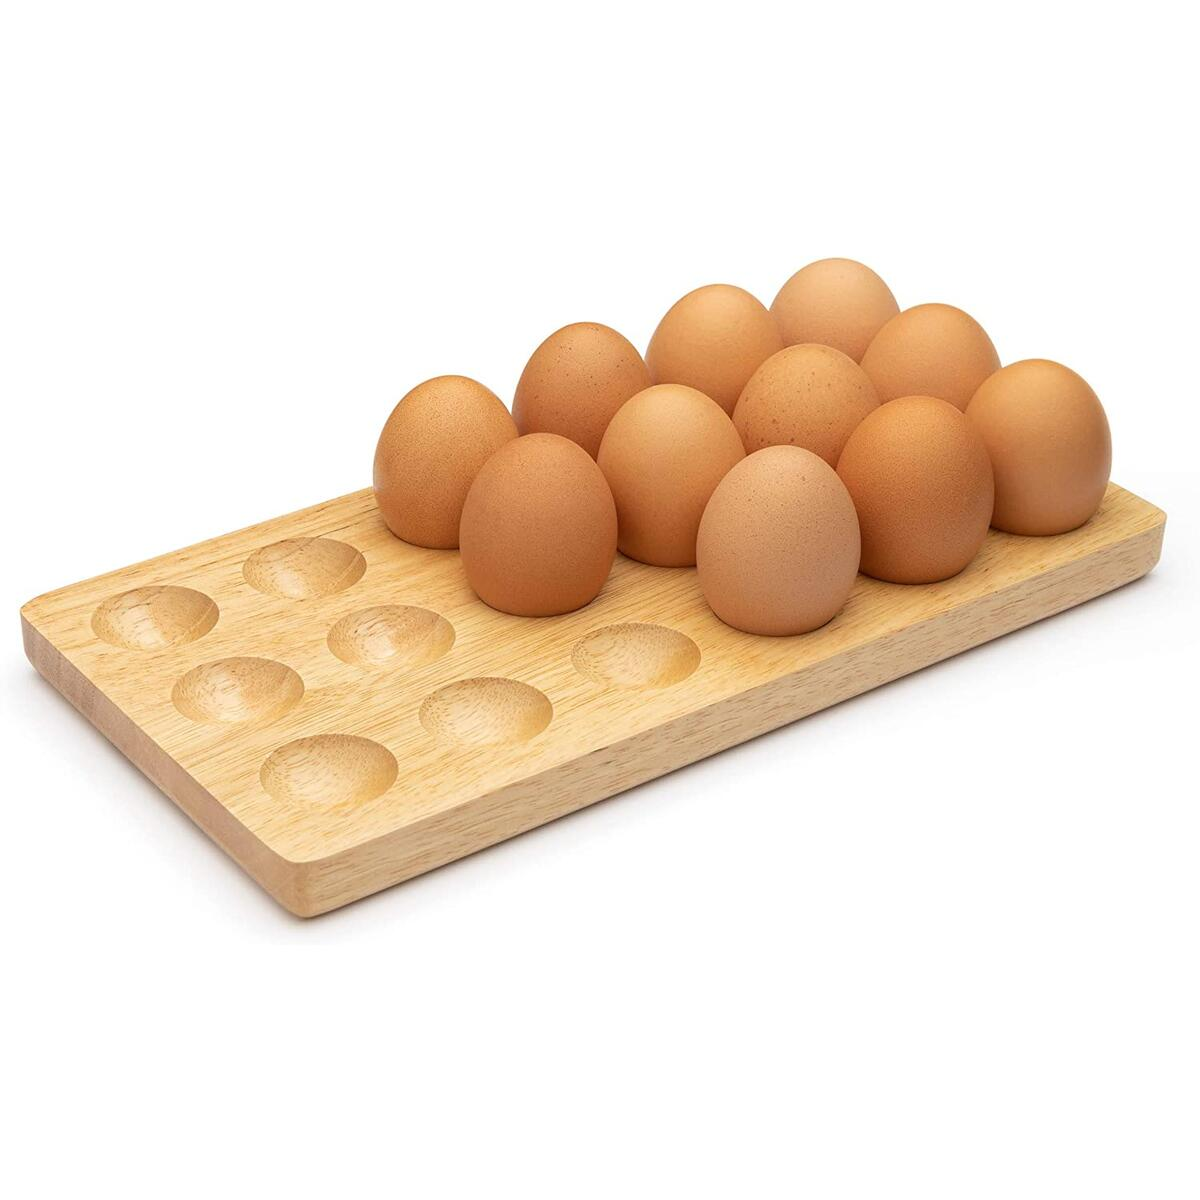 Wooden Egg Tray 18 Holder by Royal Signet, Handmade Solid wood egg tray holder for Refrigerator, or Countertop for Display or Storage. Egg tray, deviled egg, wooden egg holder for storage